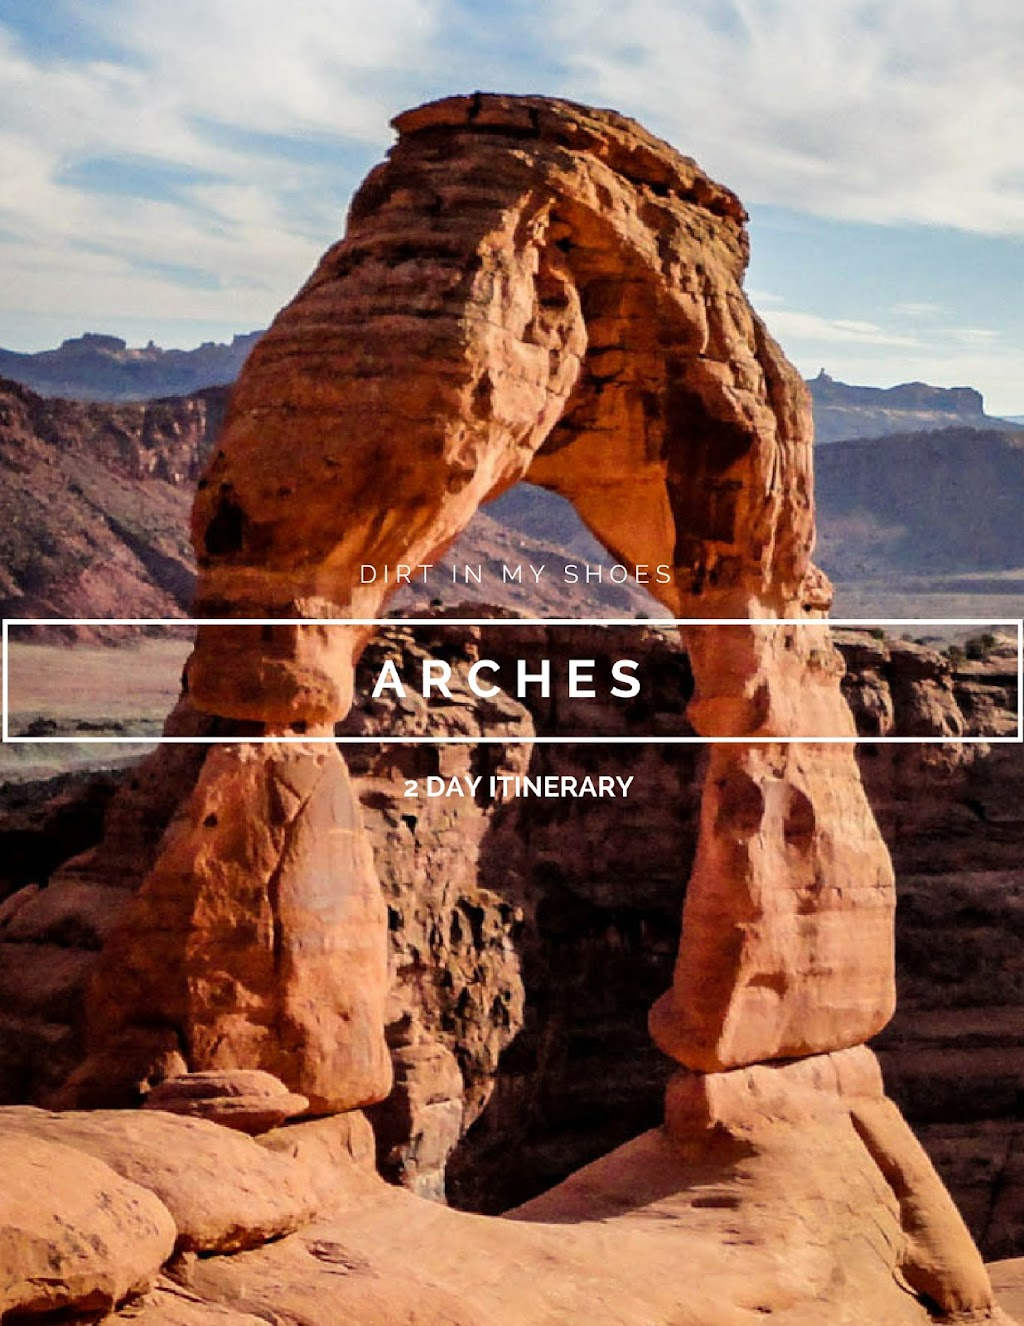 2 Day Itinerary || Arches National Park || Dirt In My Shoes